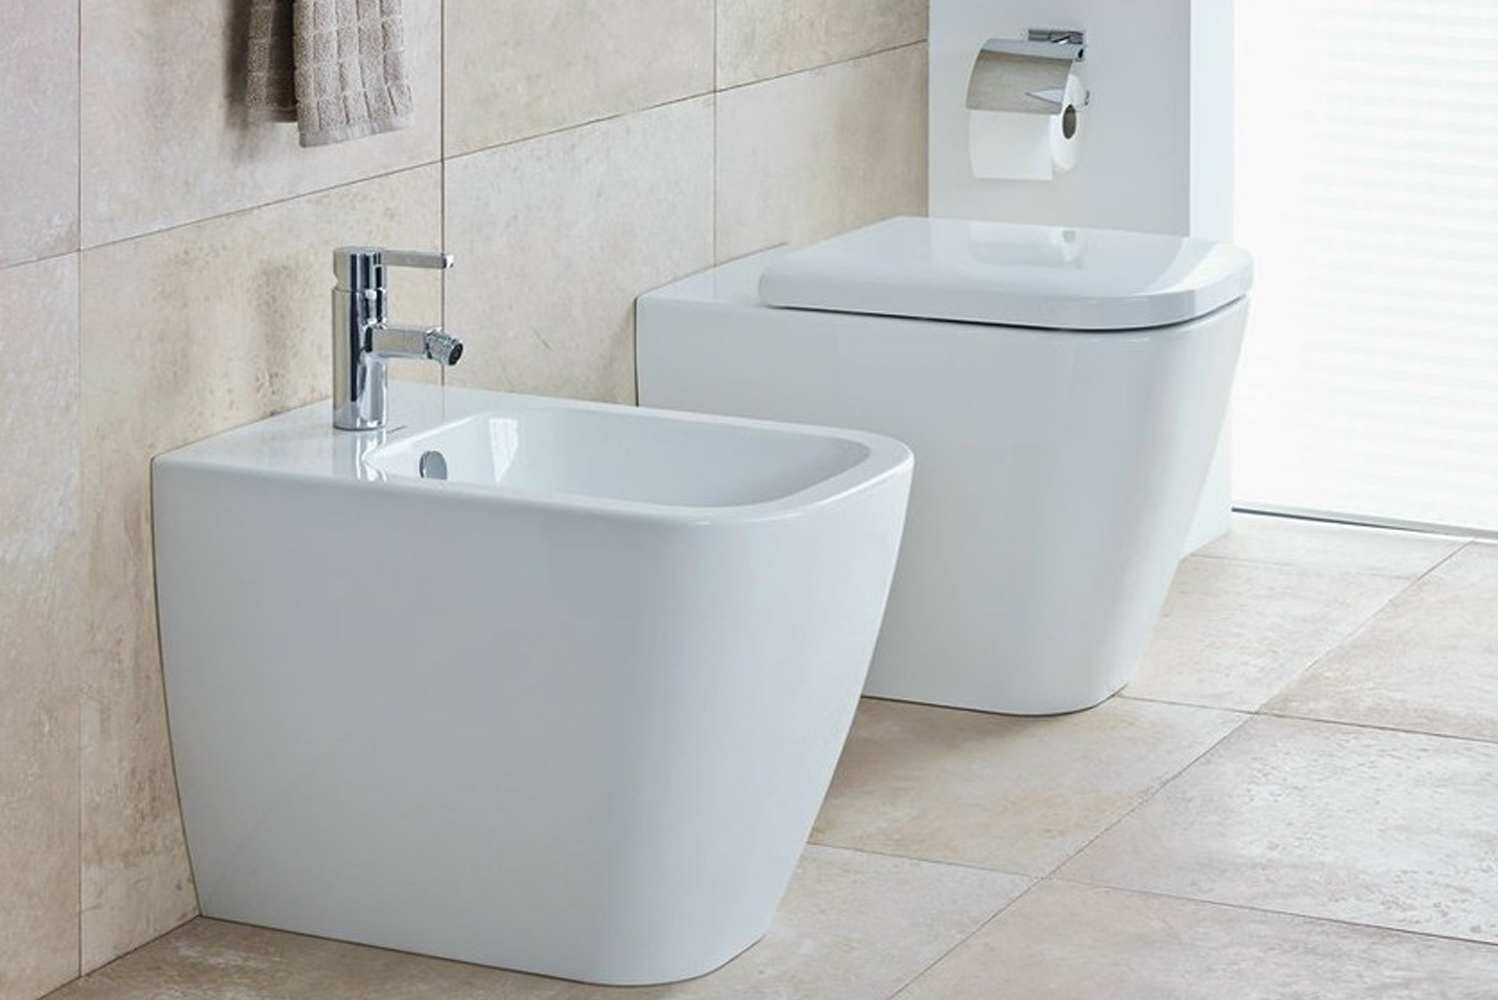 The Happy D.2 toilet and bidet are available as wall-mounted, floor standing and back-to-wall options, both with and without the SoftClose seat function.